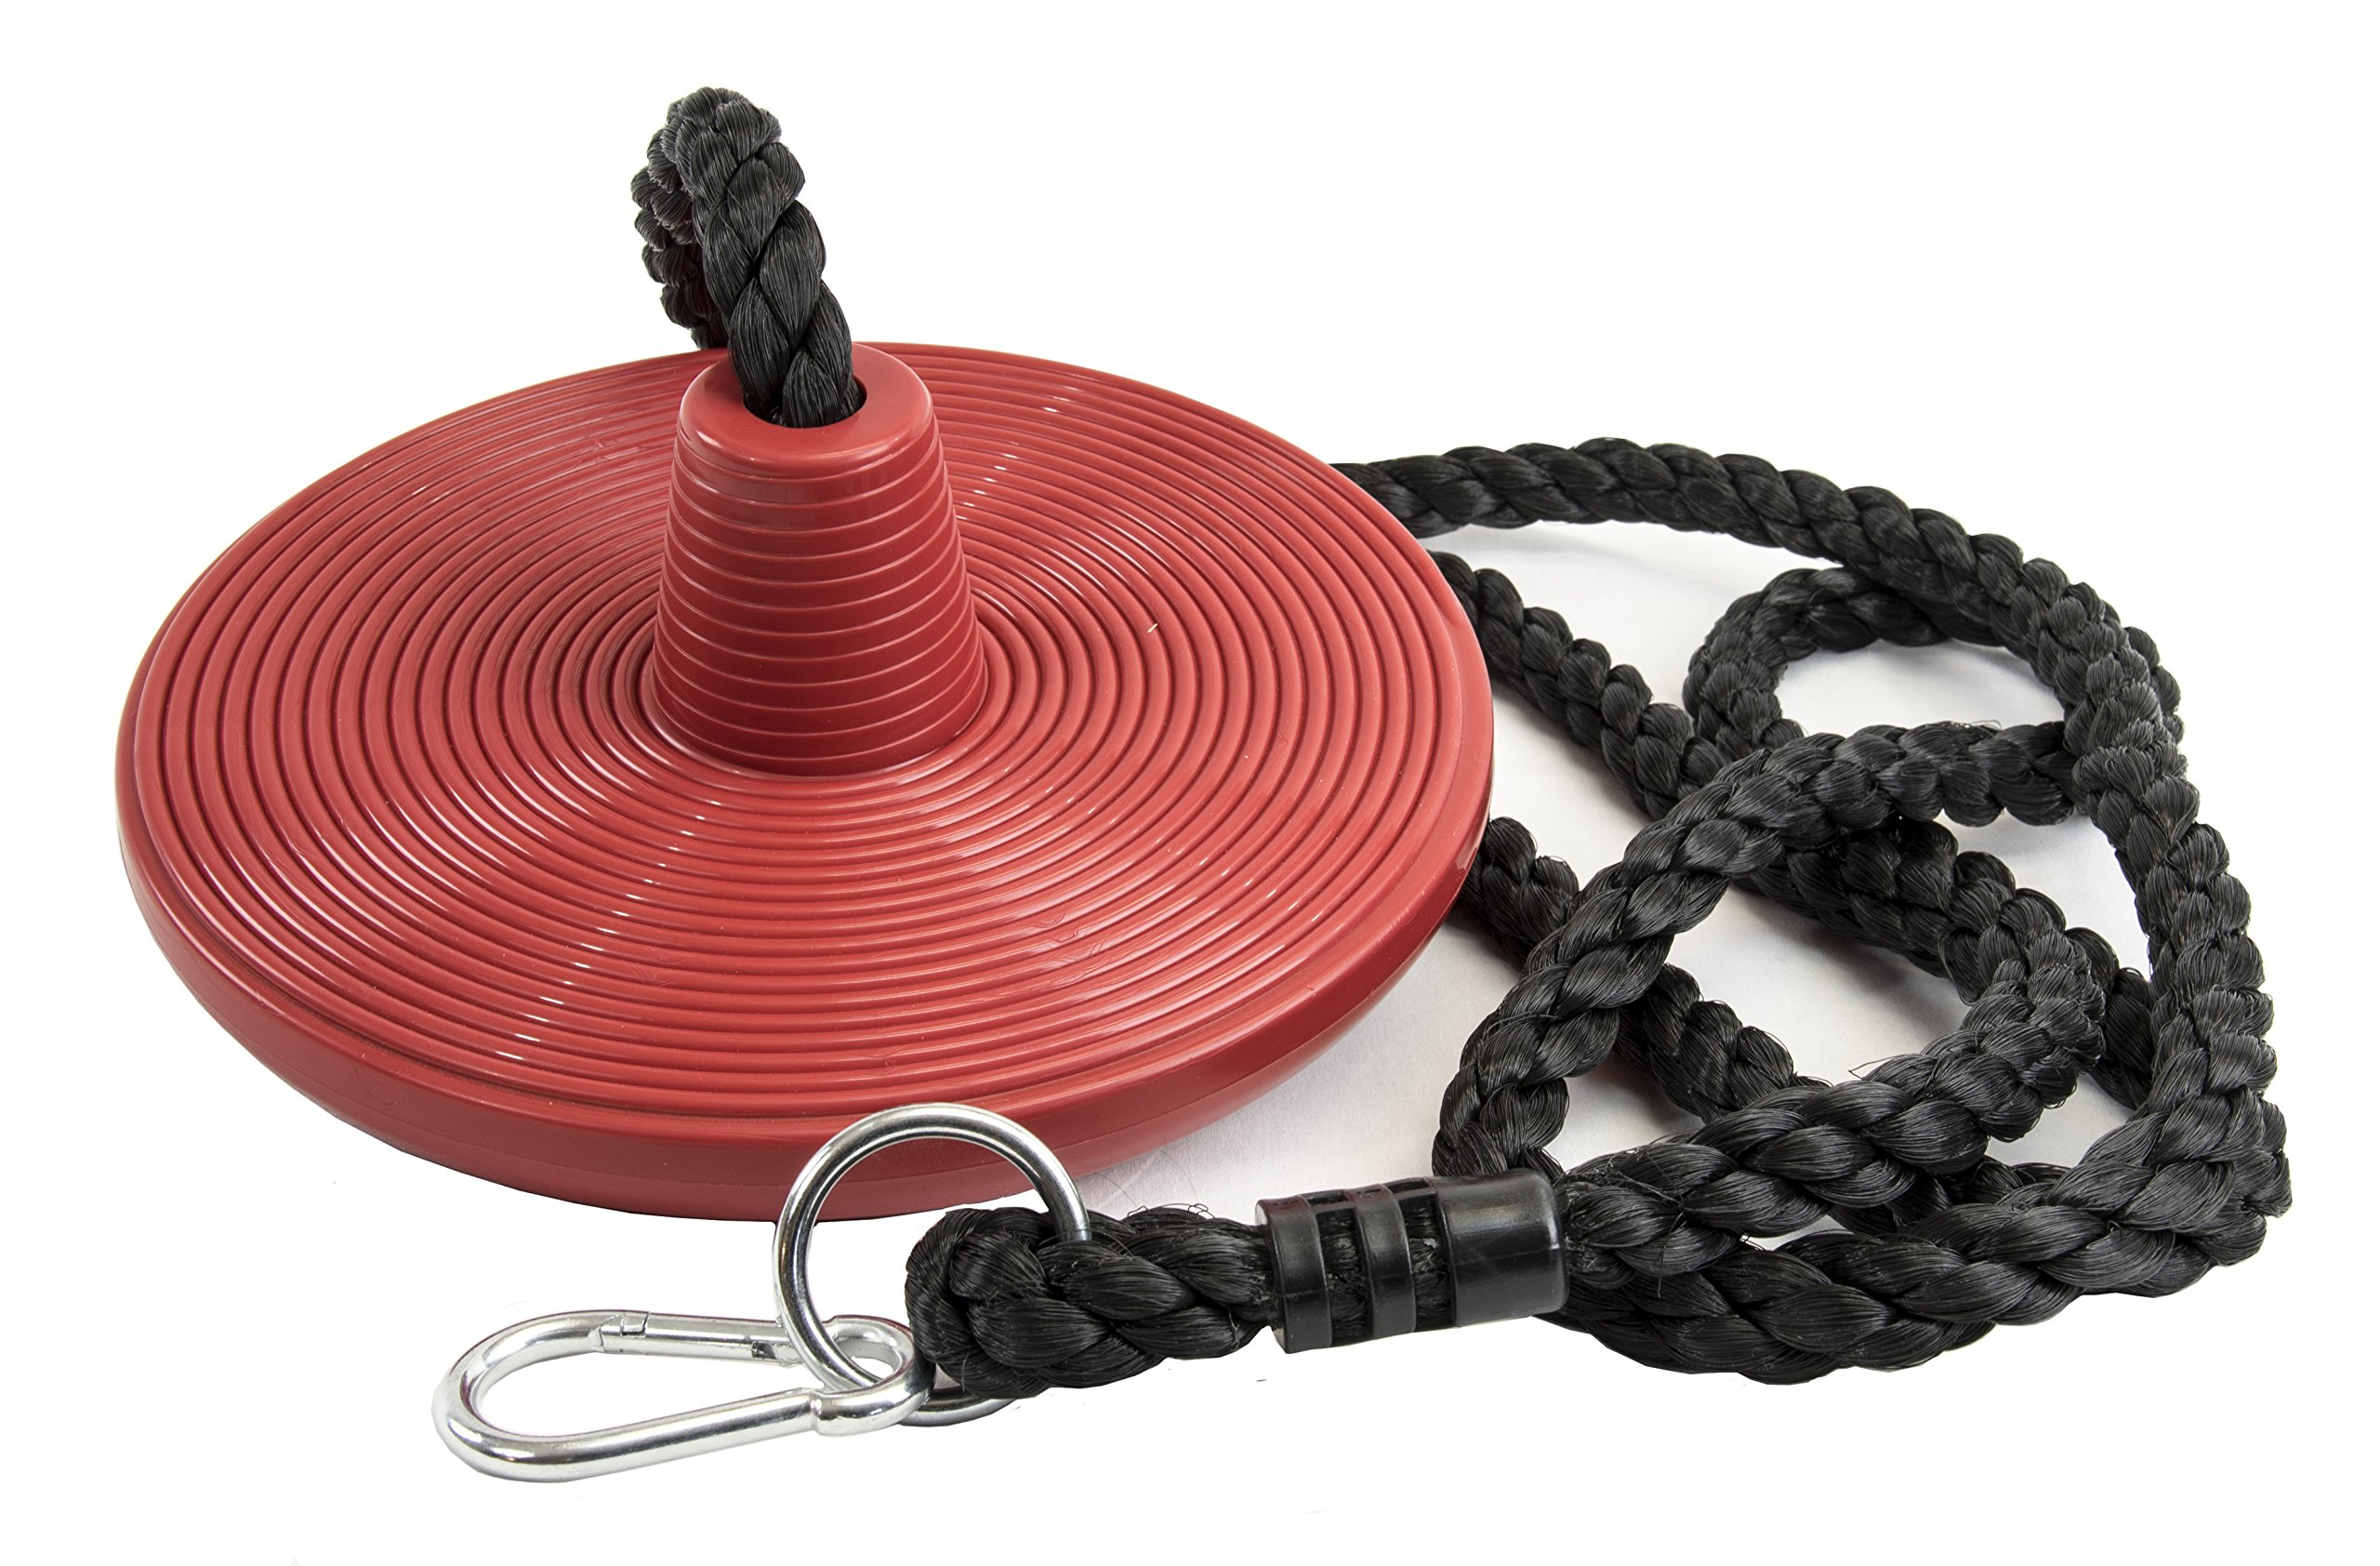 Tree Swing Rope Swing Disc - with Leg Safety Protector & 1'' Heavy Duty Rope, Red